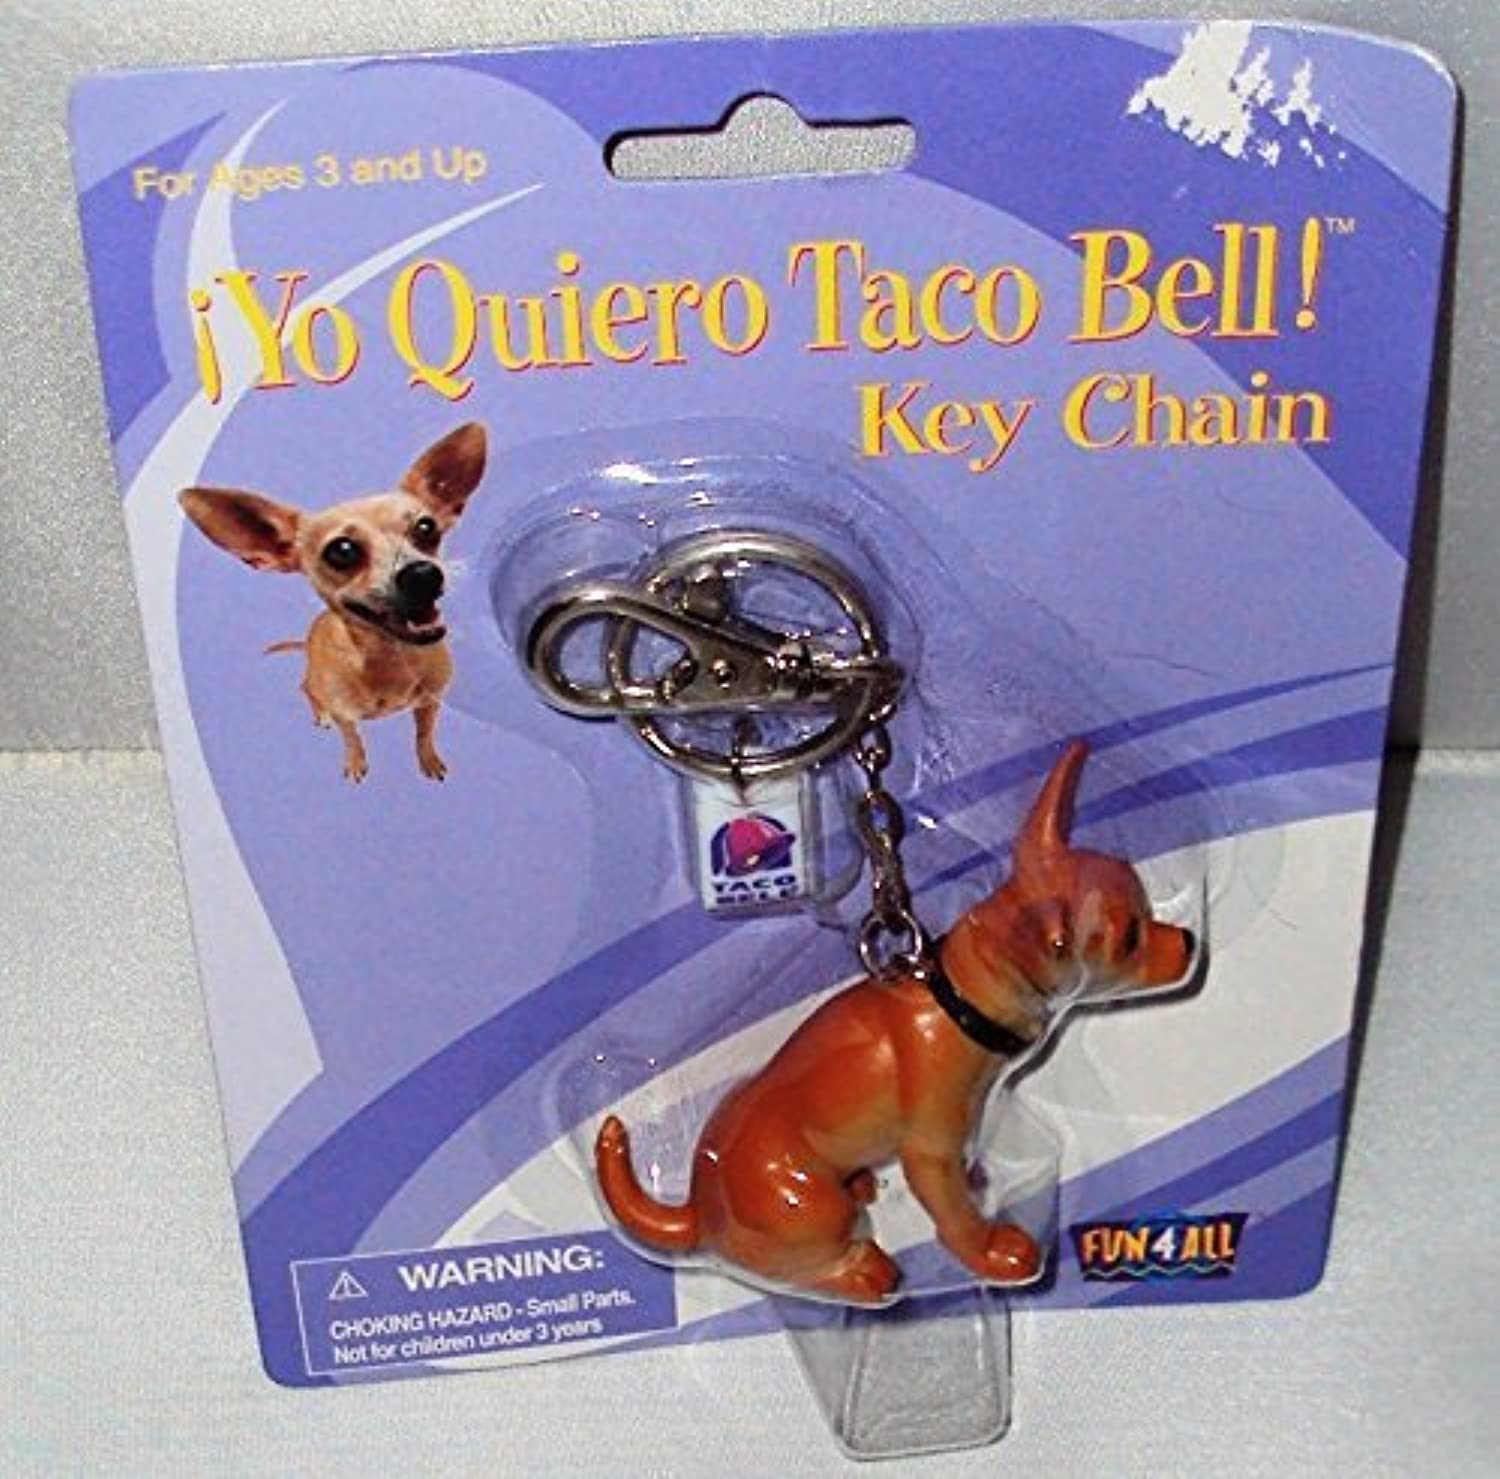 Yo Quiero Taco Bell Key Chain by Fun 4 All